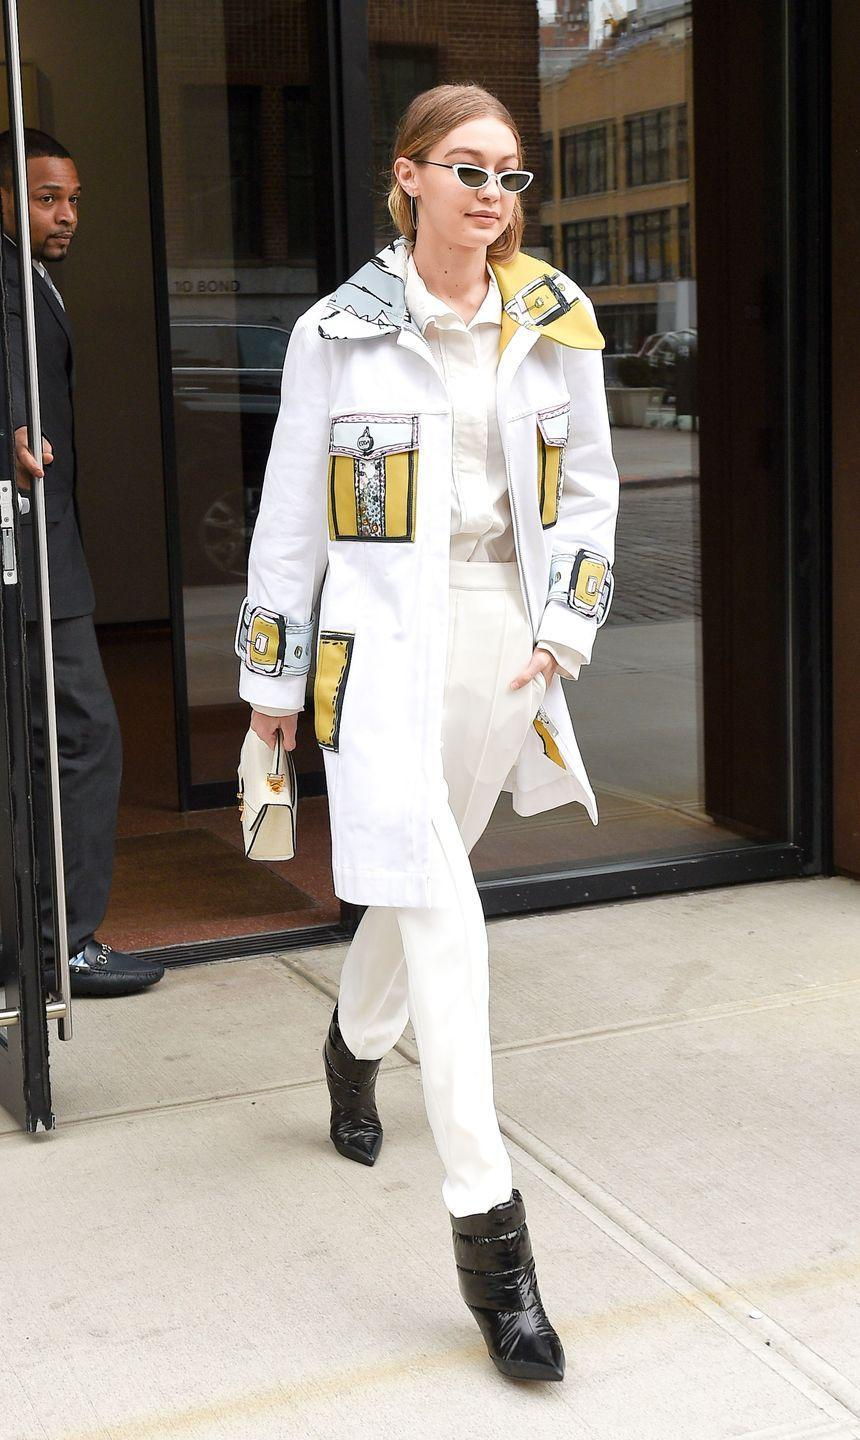 """<p>In a blue and yellow-accented white jacket, layered over a white collared button-down top and white pants, accessorized with pointed-toe black ankle boots, <a href=""""https://www.mytheresa.com/en-us/designers/linda-farrow/accessories.html?gclid=CjwKCAiAtorUBRBnEiwAfcp_YzN2qNN8D-Jdh8_rT_Zvx4X72gqLZIhnaTp9LBmIBRtEfVGksp5MOBoCgOUQAvD_BwE&ef_id=WmoiXAAAALIoCVHa:20180214020435:s"""" rel=""""nofollow noopener"""" target=""""_blank"""" data-ylk=""""slk:Linda Farrow sunglasses"""" class=""""link rapid-noclick-resp"""">Linda Farrow sunglasses</a>, and a white mini bag leaving her apartment building in NYC. </p>"""